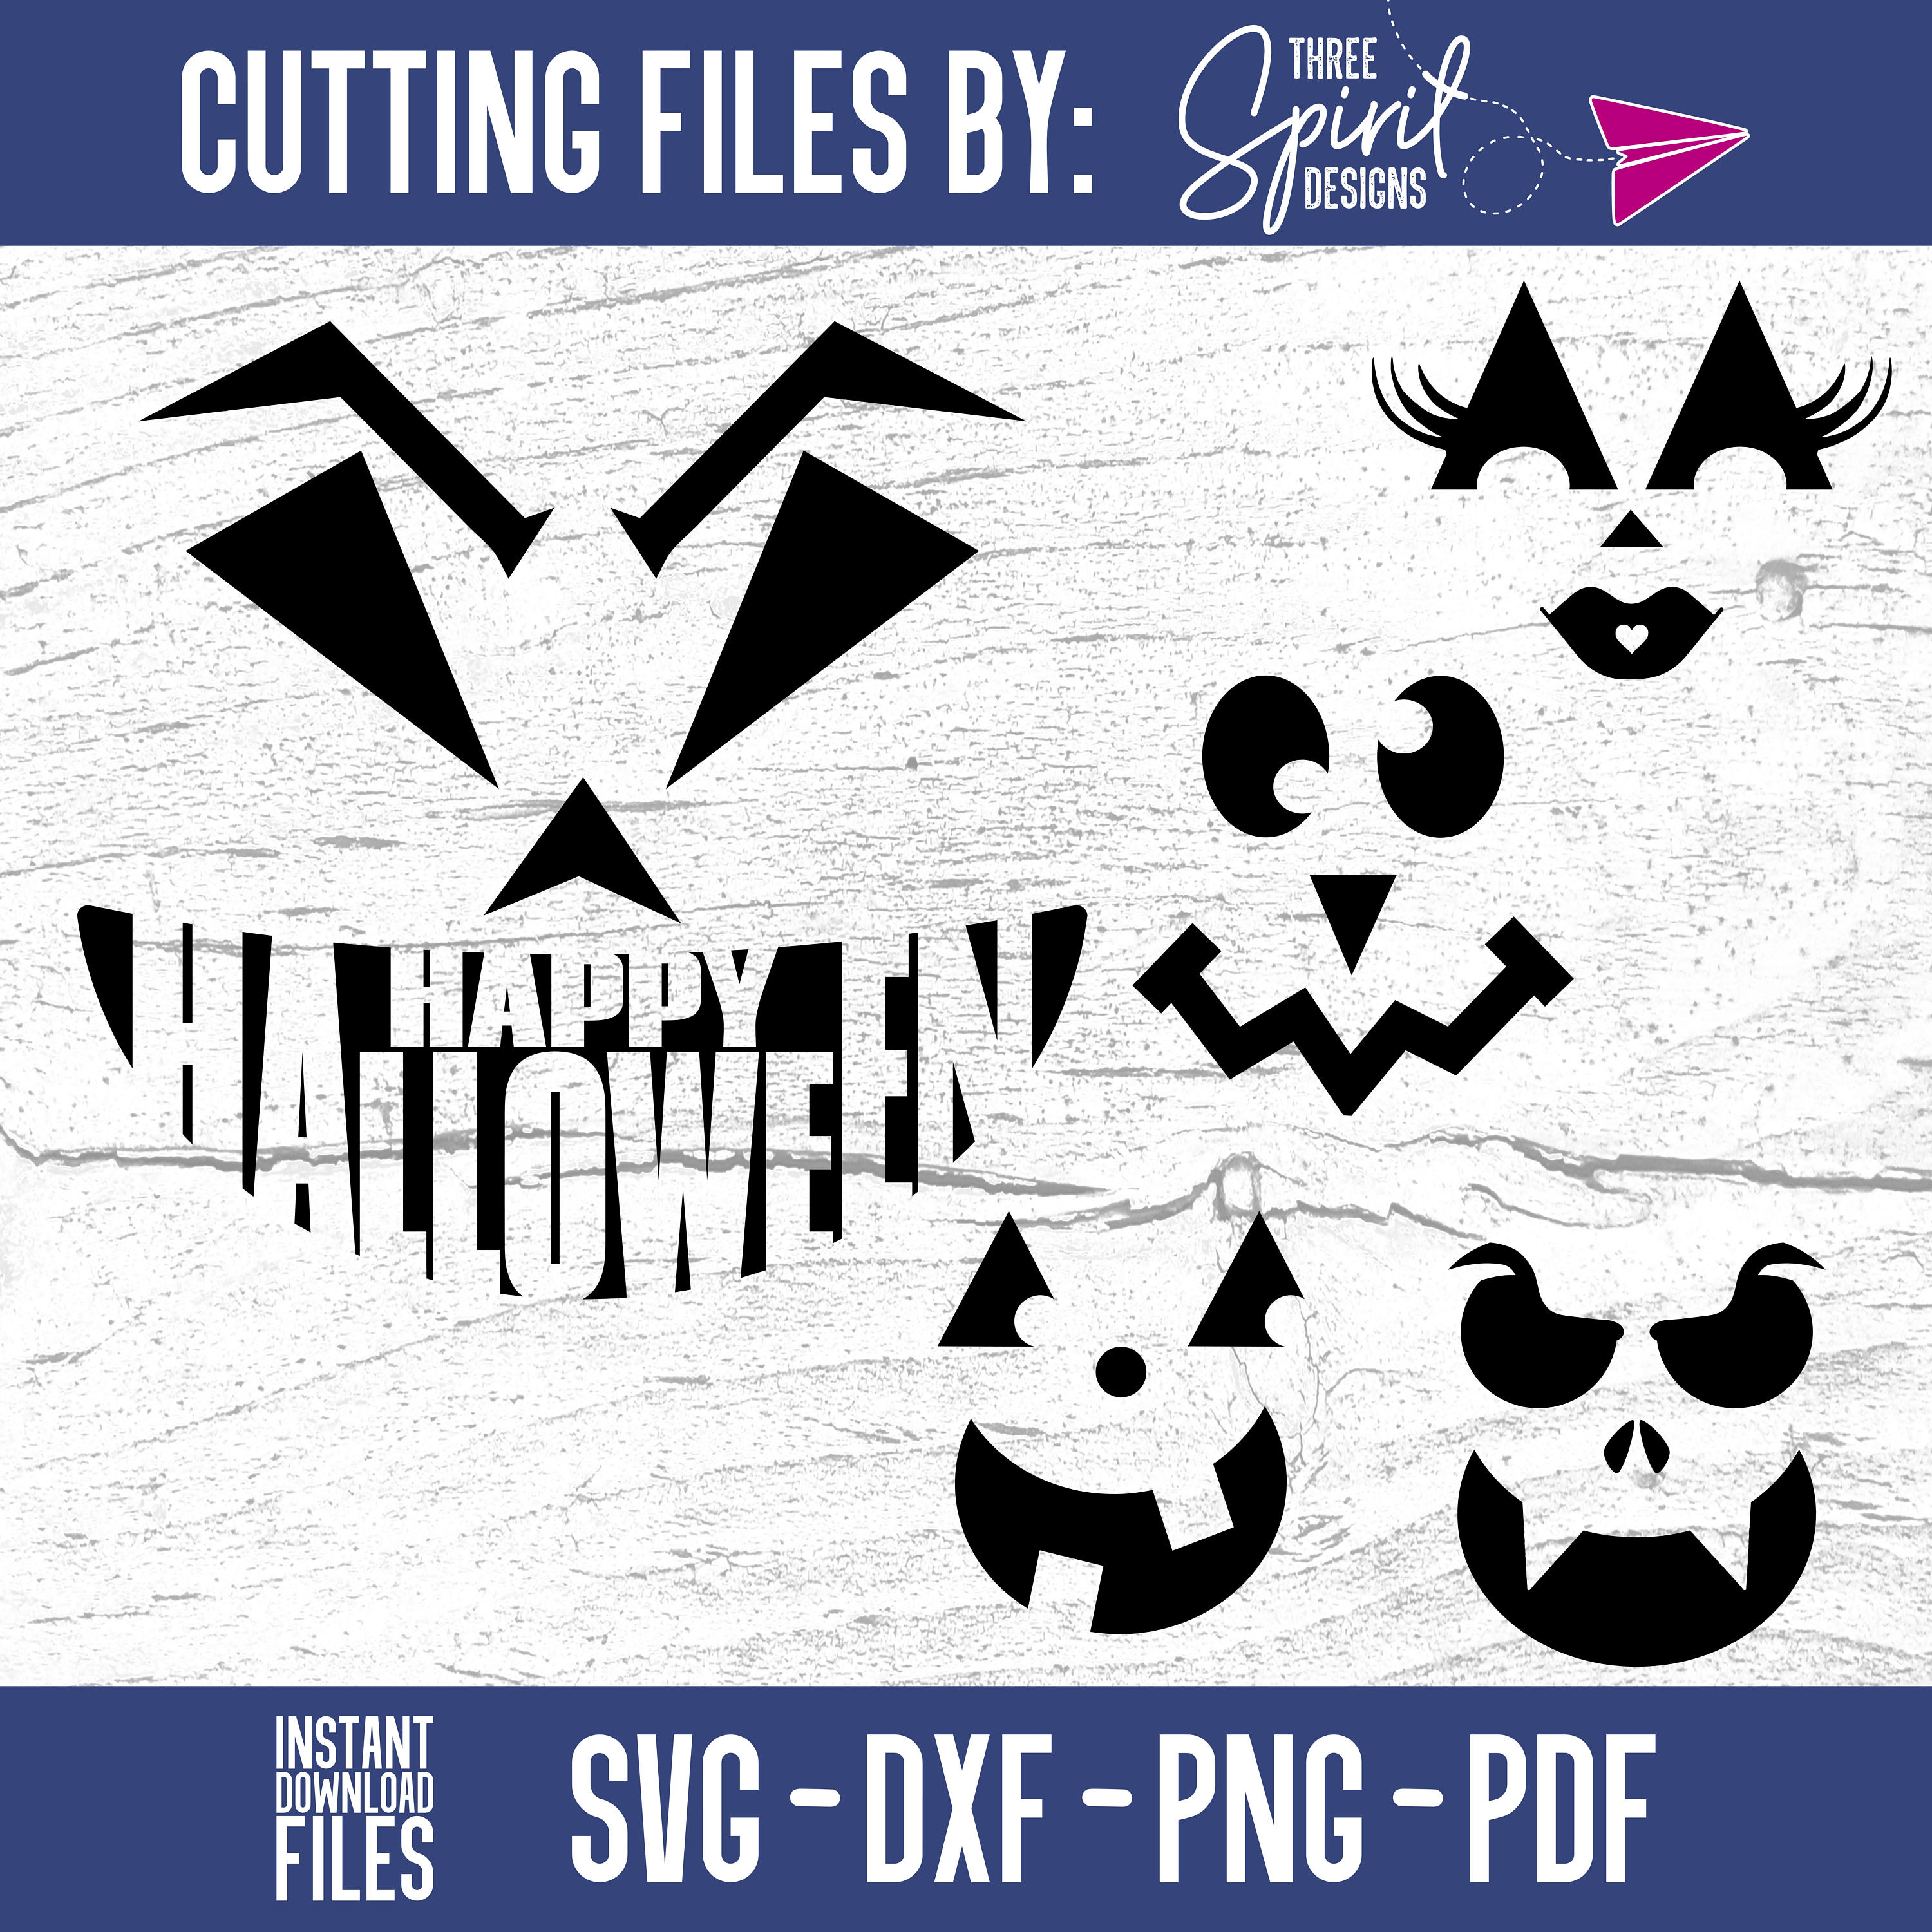 Silly Girl Face Png - Jack O Lantern Pumpkin Happy Halloween Spooky Scary Silly Girl | PNGio